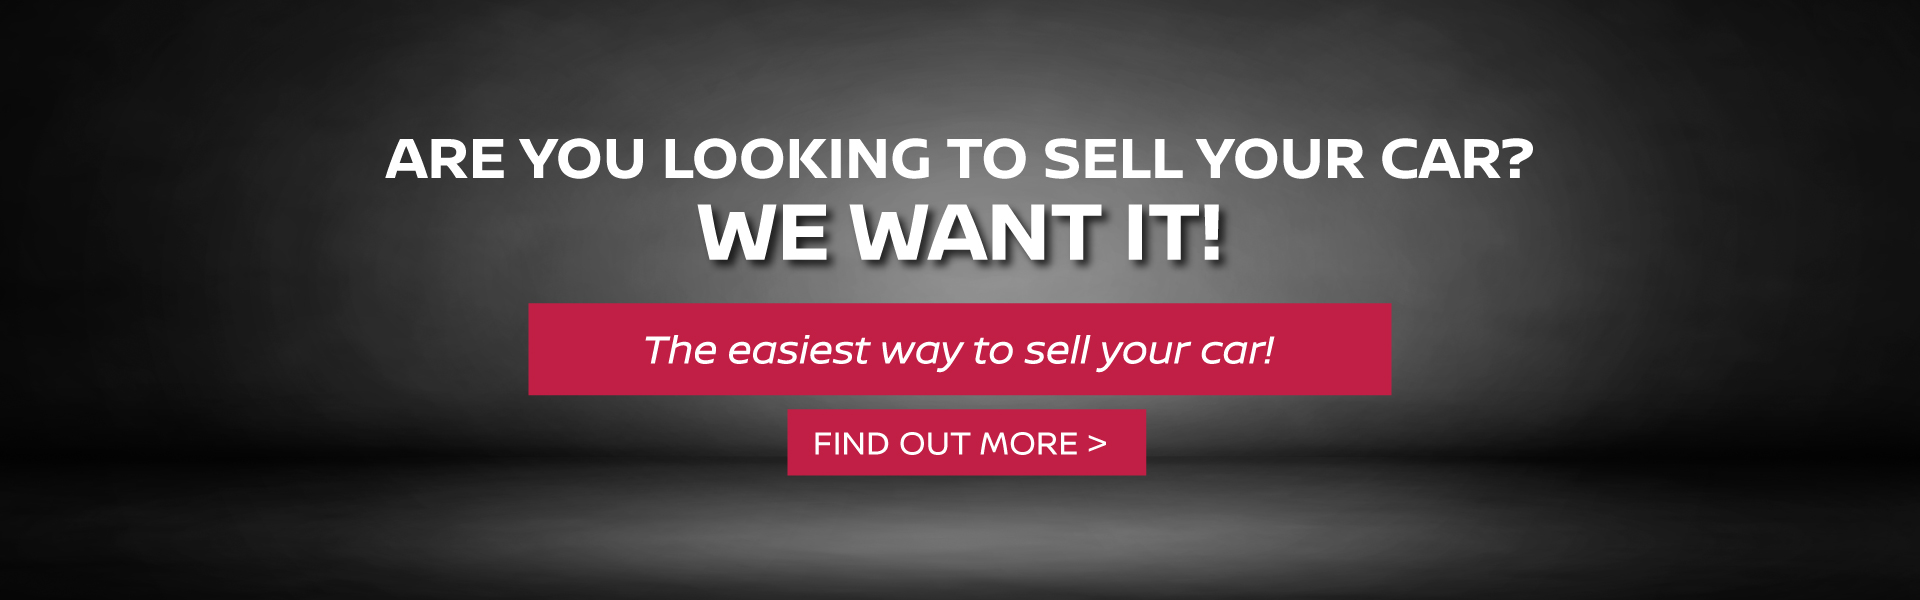 Are you looking to sell your car? We want it!